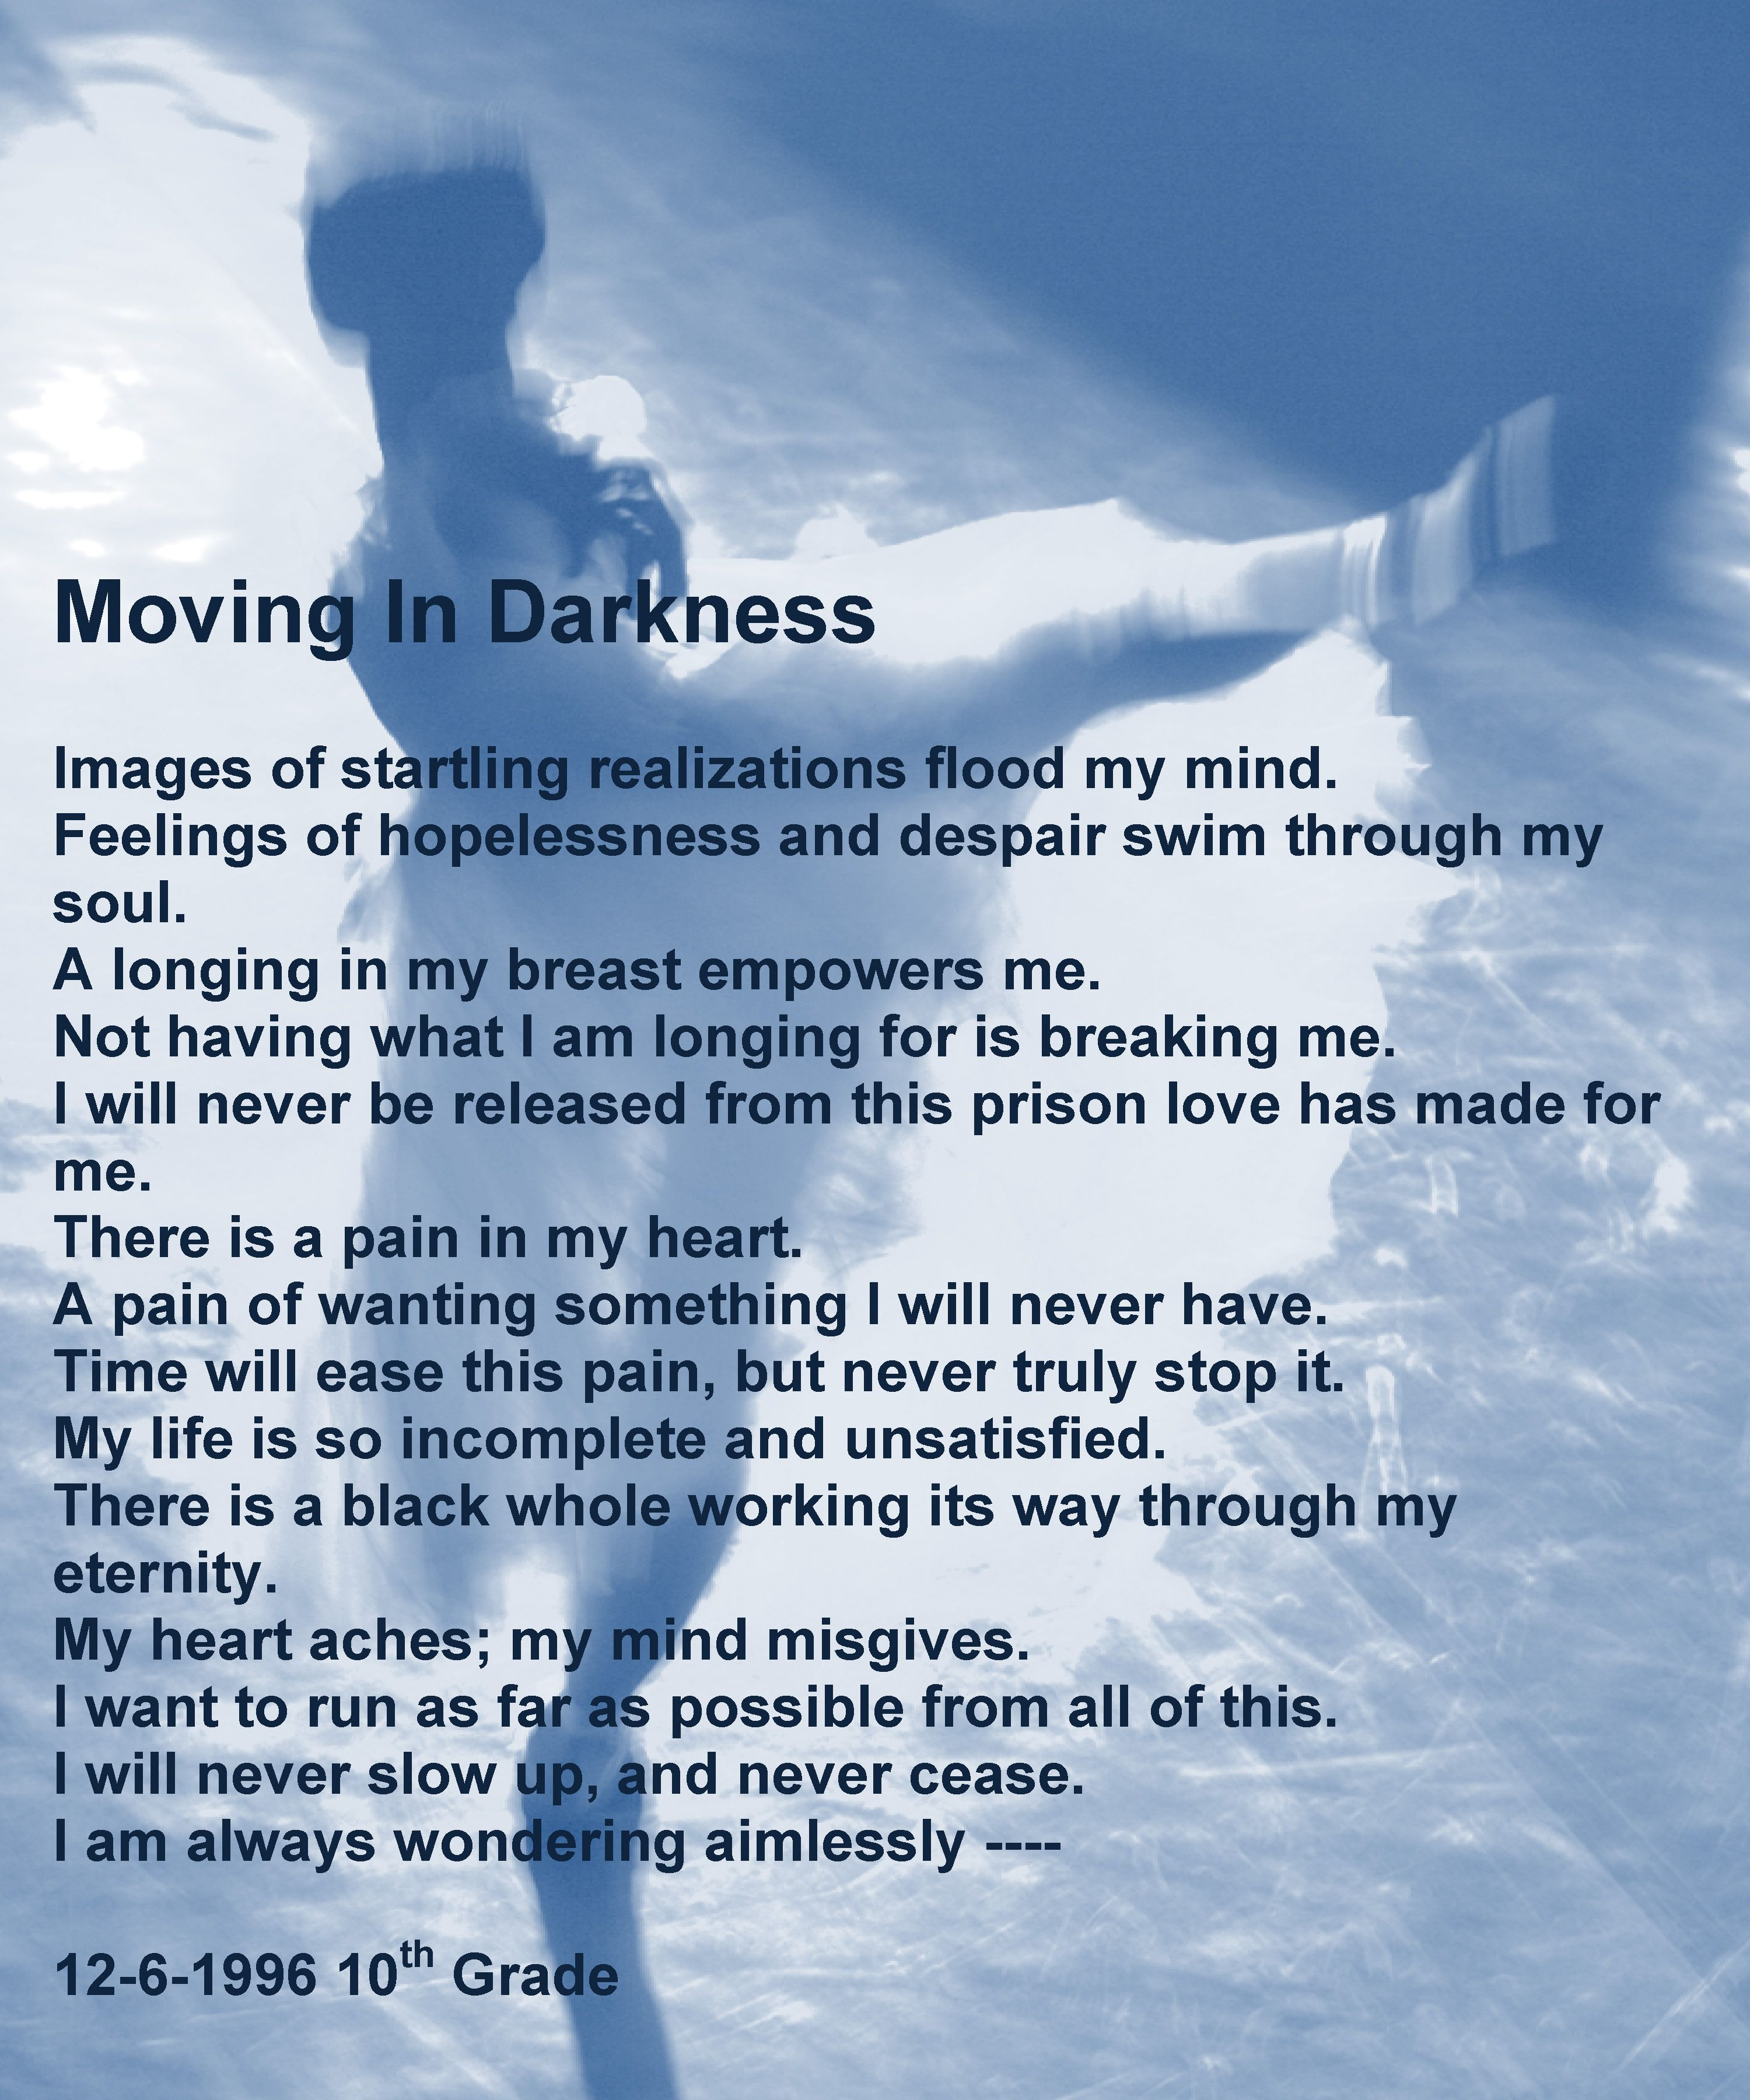 Moving in Darkness